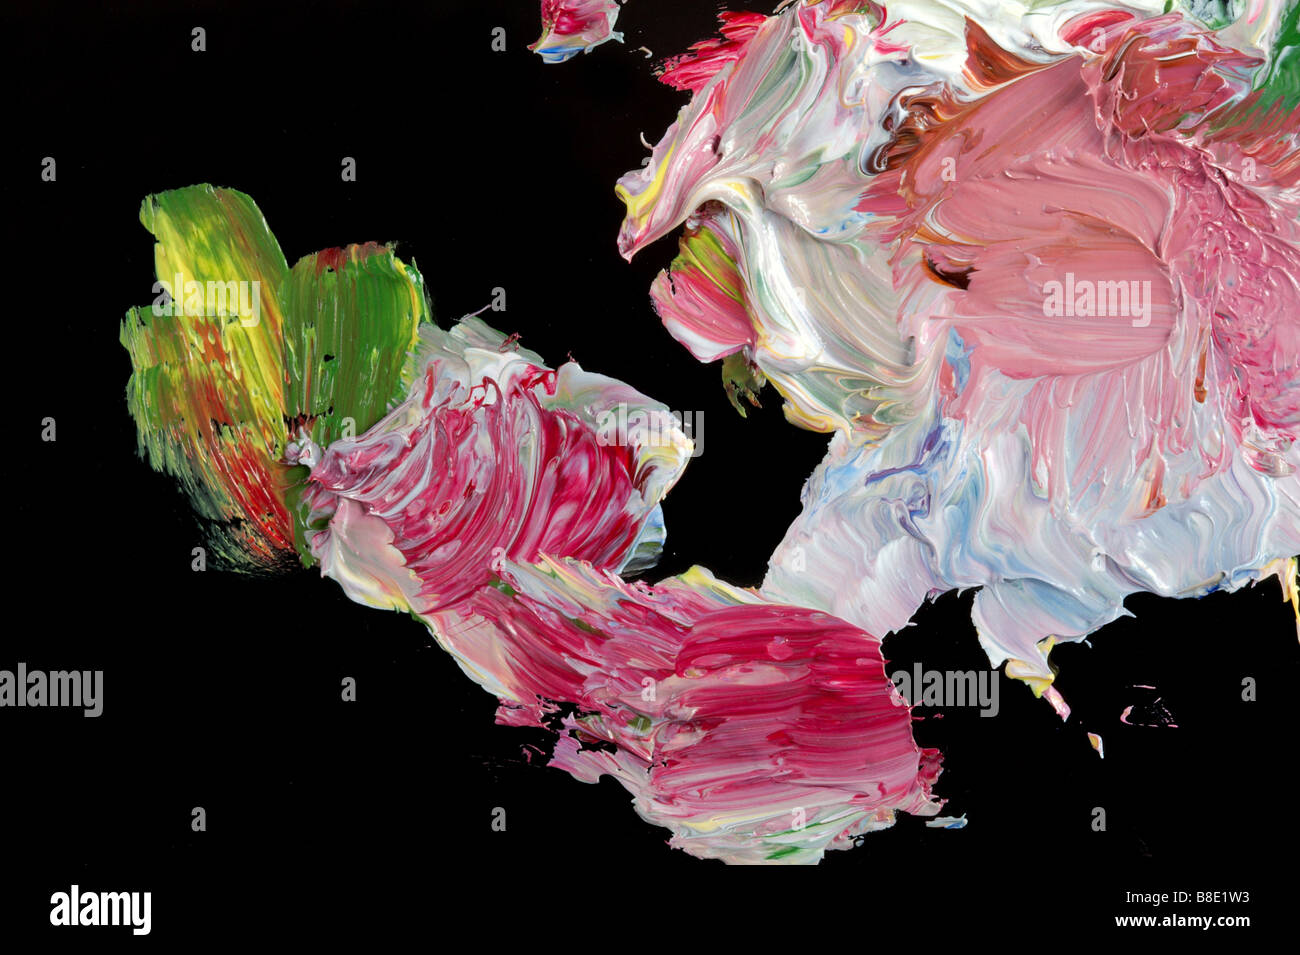 Mixing of an oil paint on black glass - Stock Image